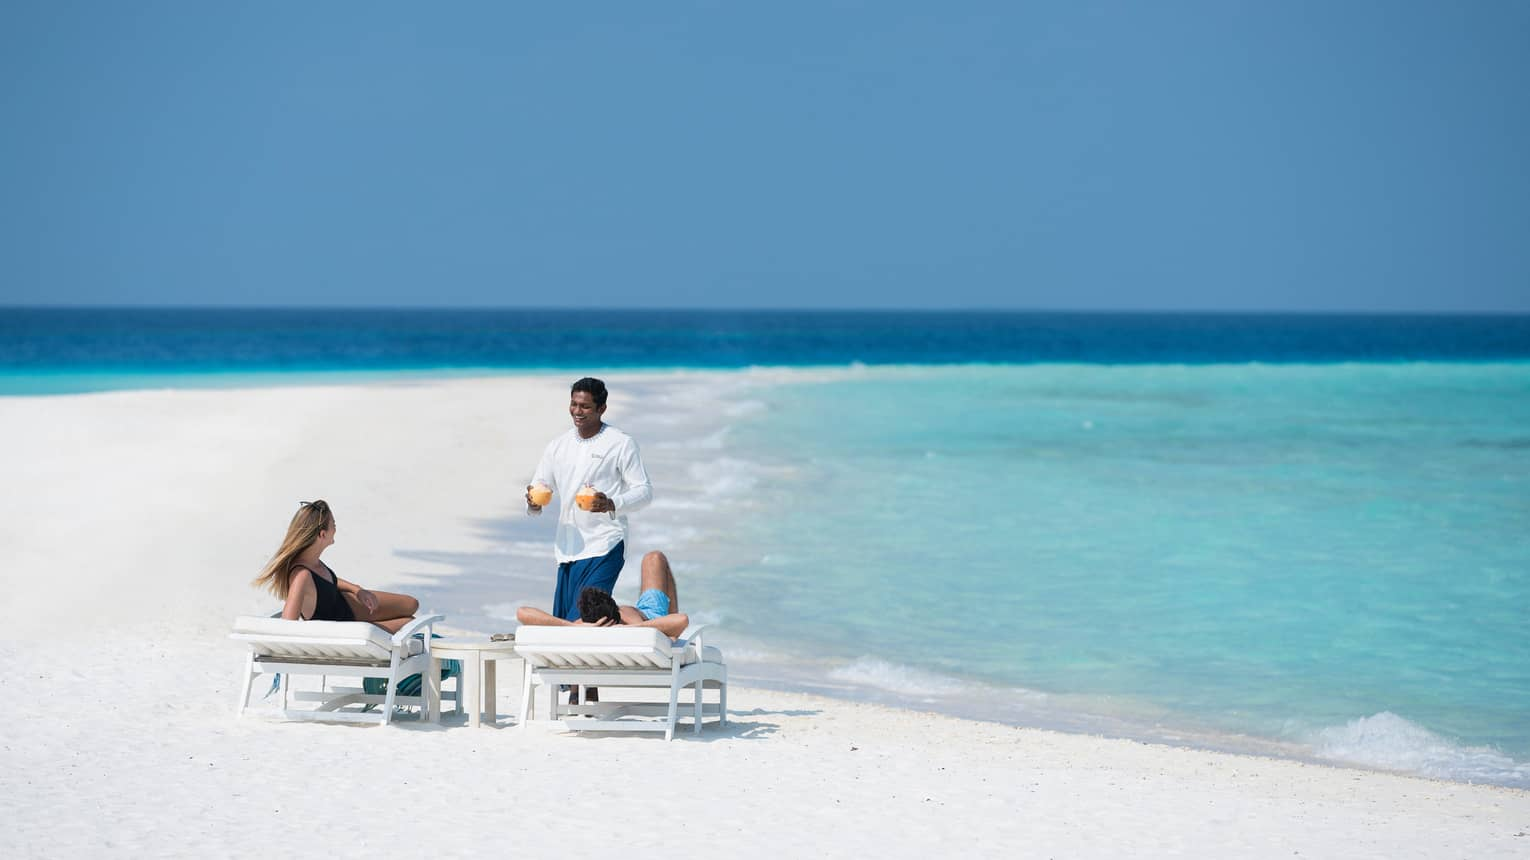 Server brings fresh juice to couple relaxing on lounge chairs on white sand beach by ocean